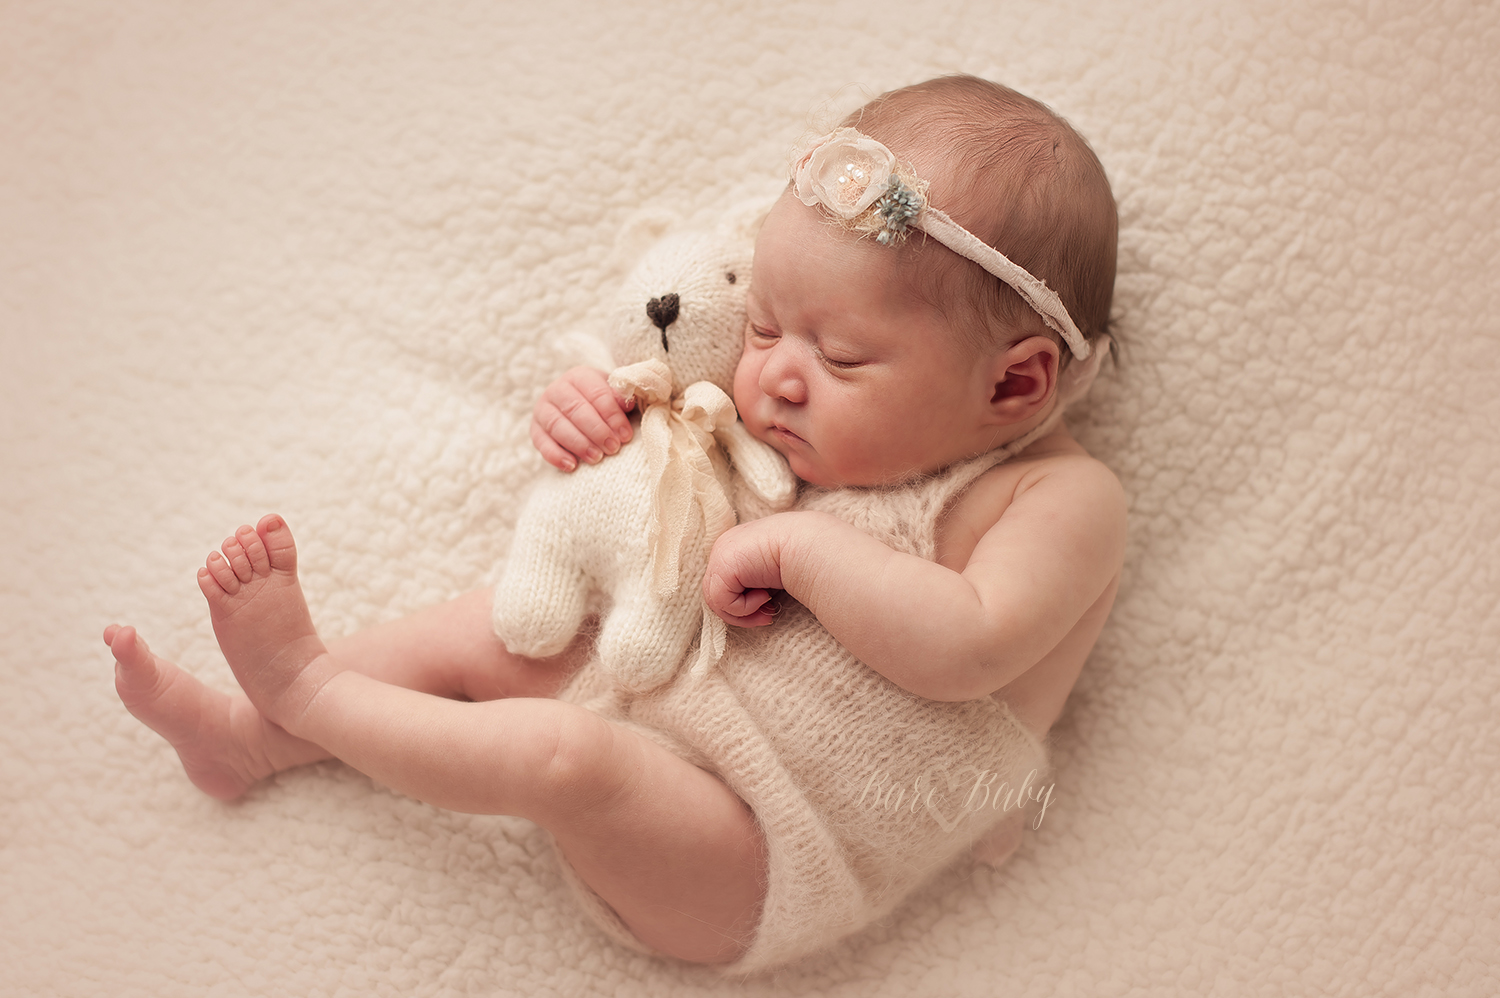 new-albany-newborn-photographer-bare-baby.jpg